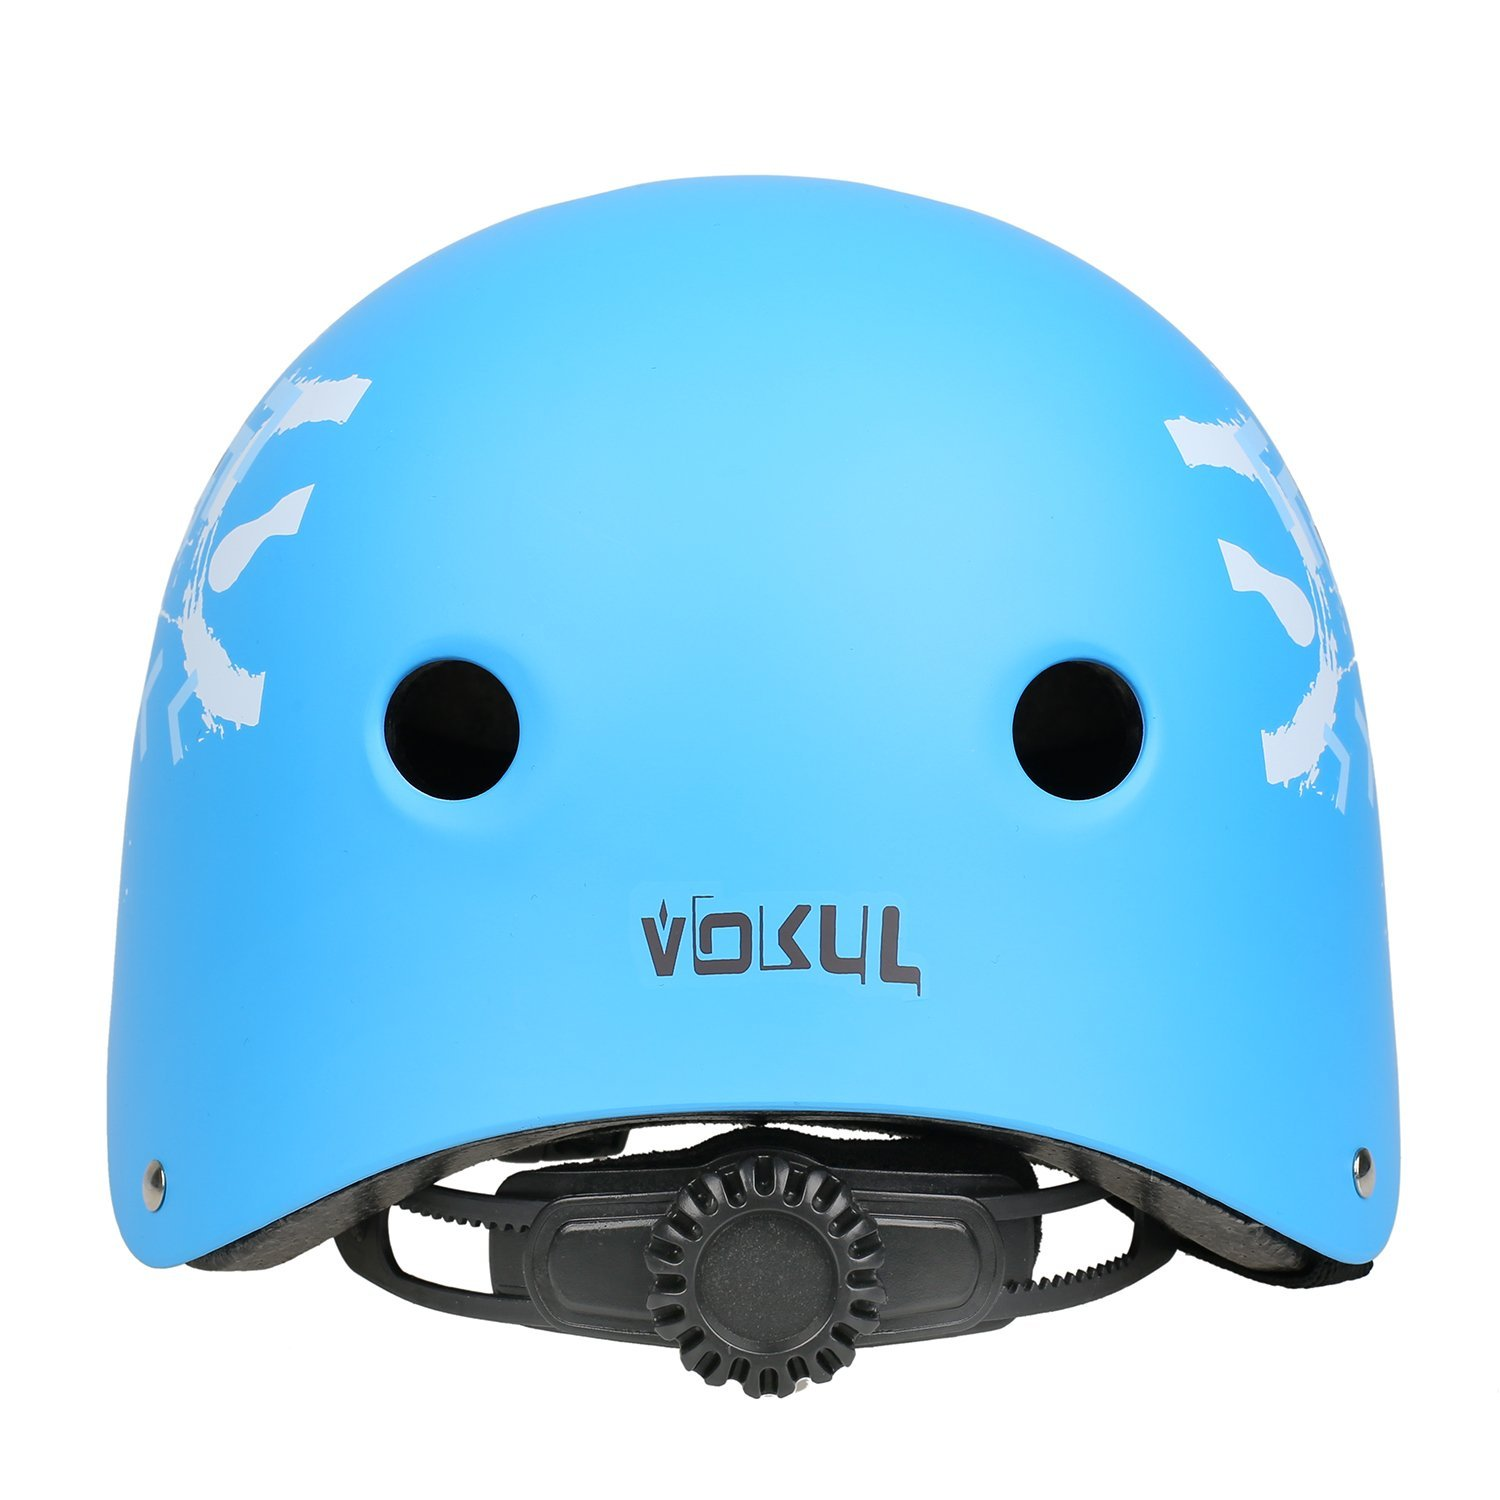 VOKUL Skate Helmet CPSC ASTM Certified Impact Resistance Ventilation for Kid//Youth//Adult Skateboarding Inline Skating Cycling and Other Outdoor Sports